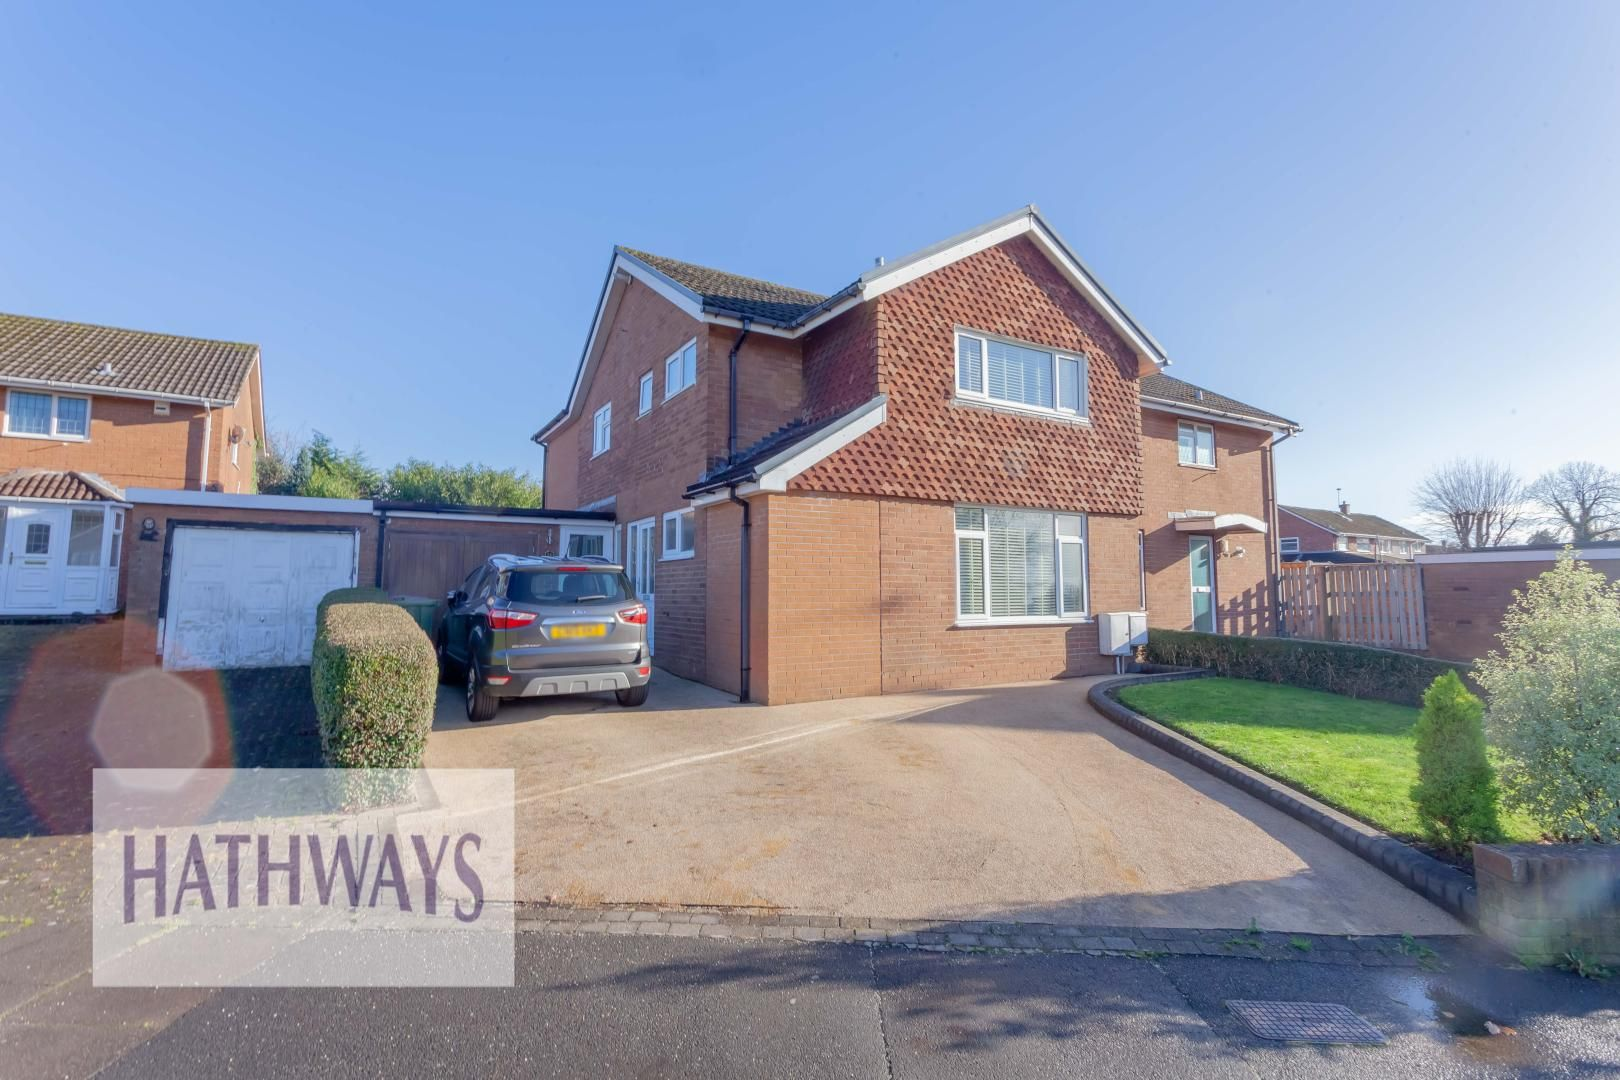 4 bed house for sale in Llanyravon Way - Property Image 1